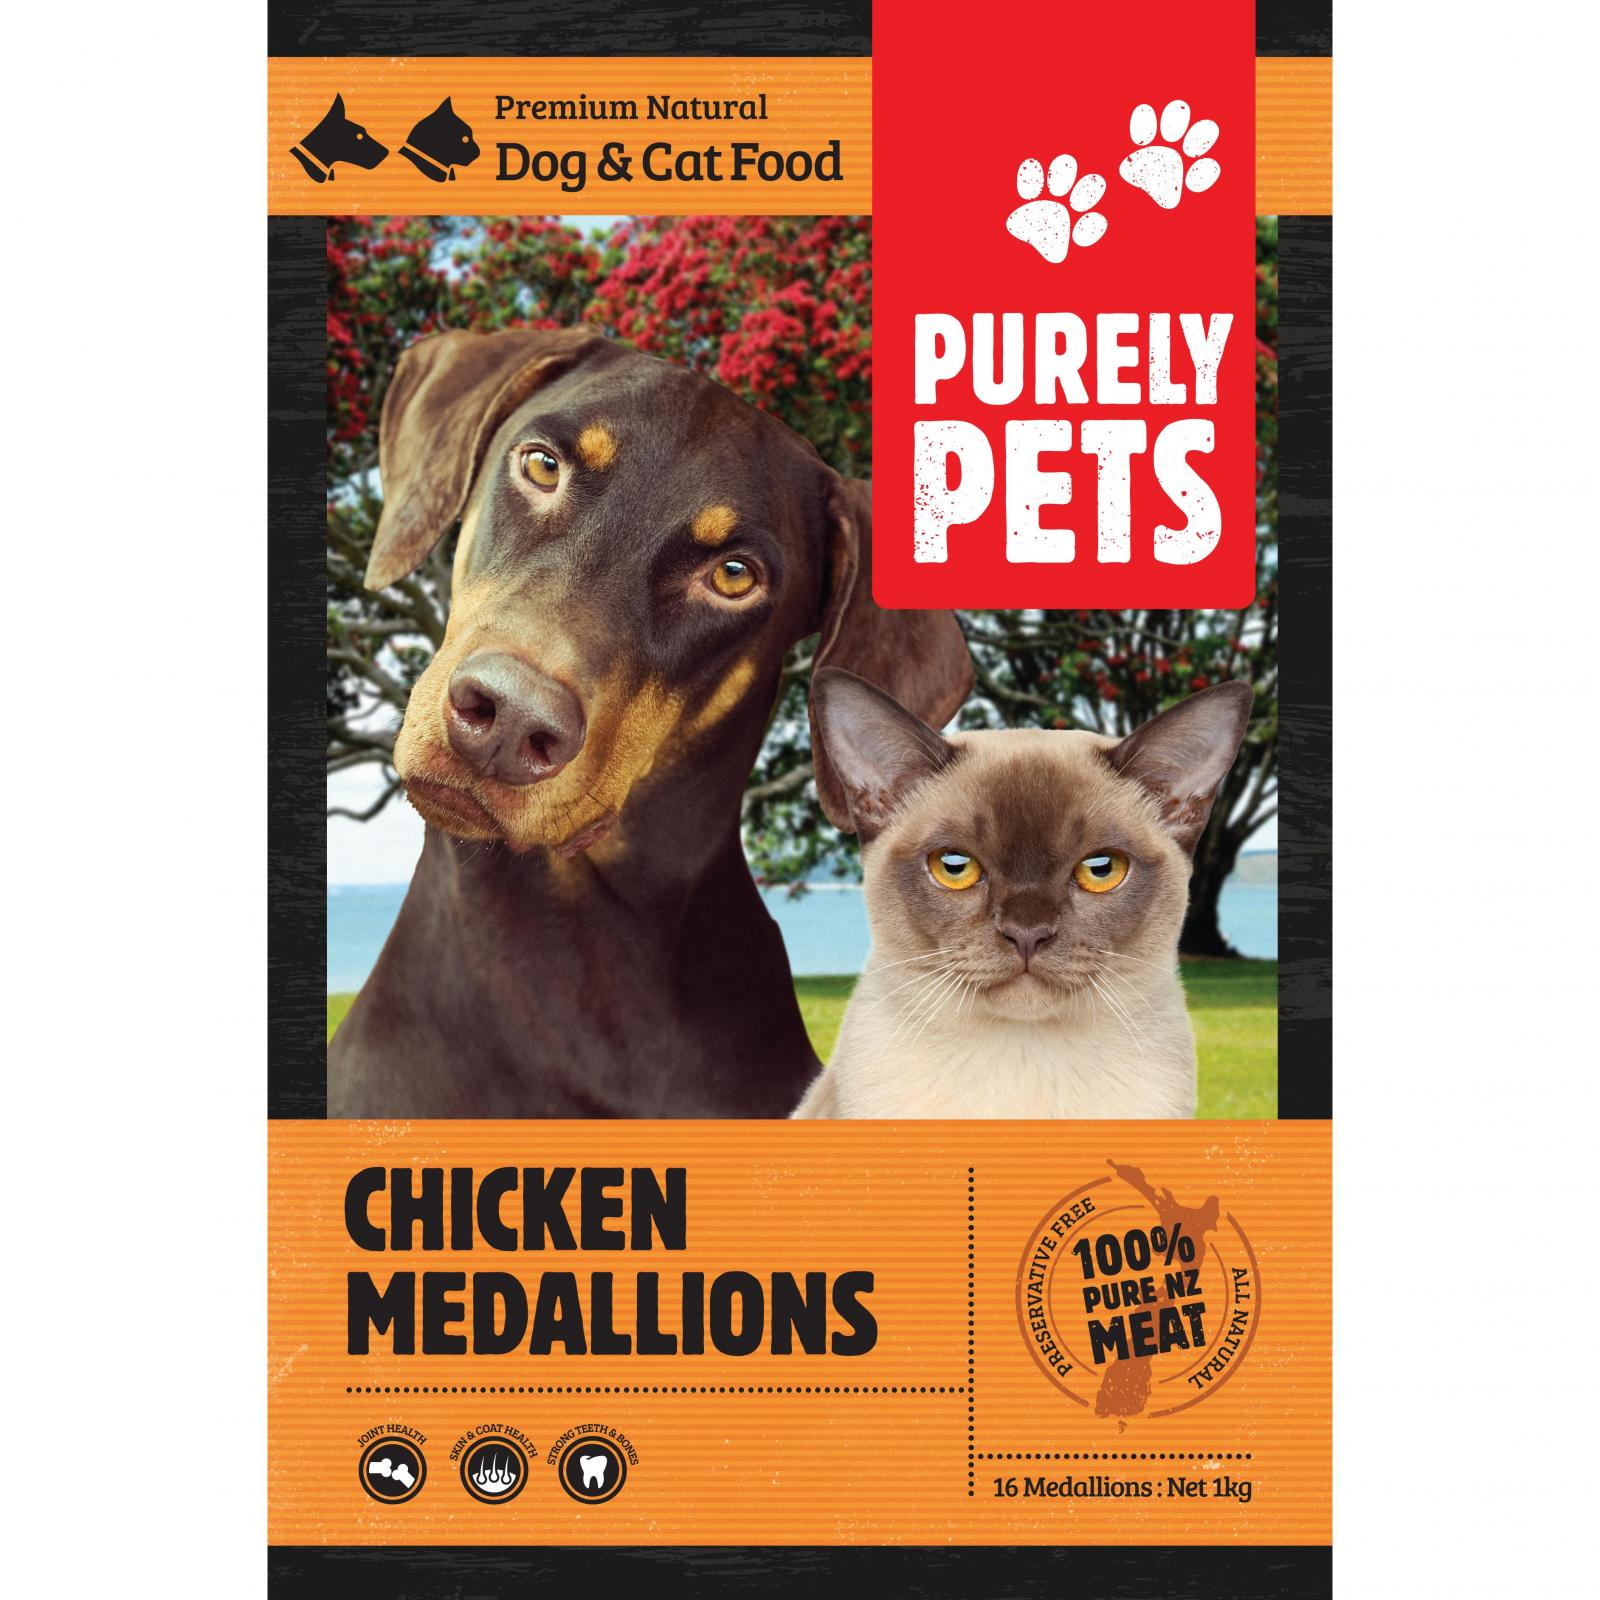 PURELY PETS Purely Pets Frozen Chicken Medallions